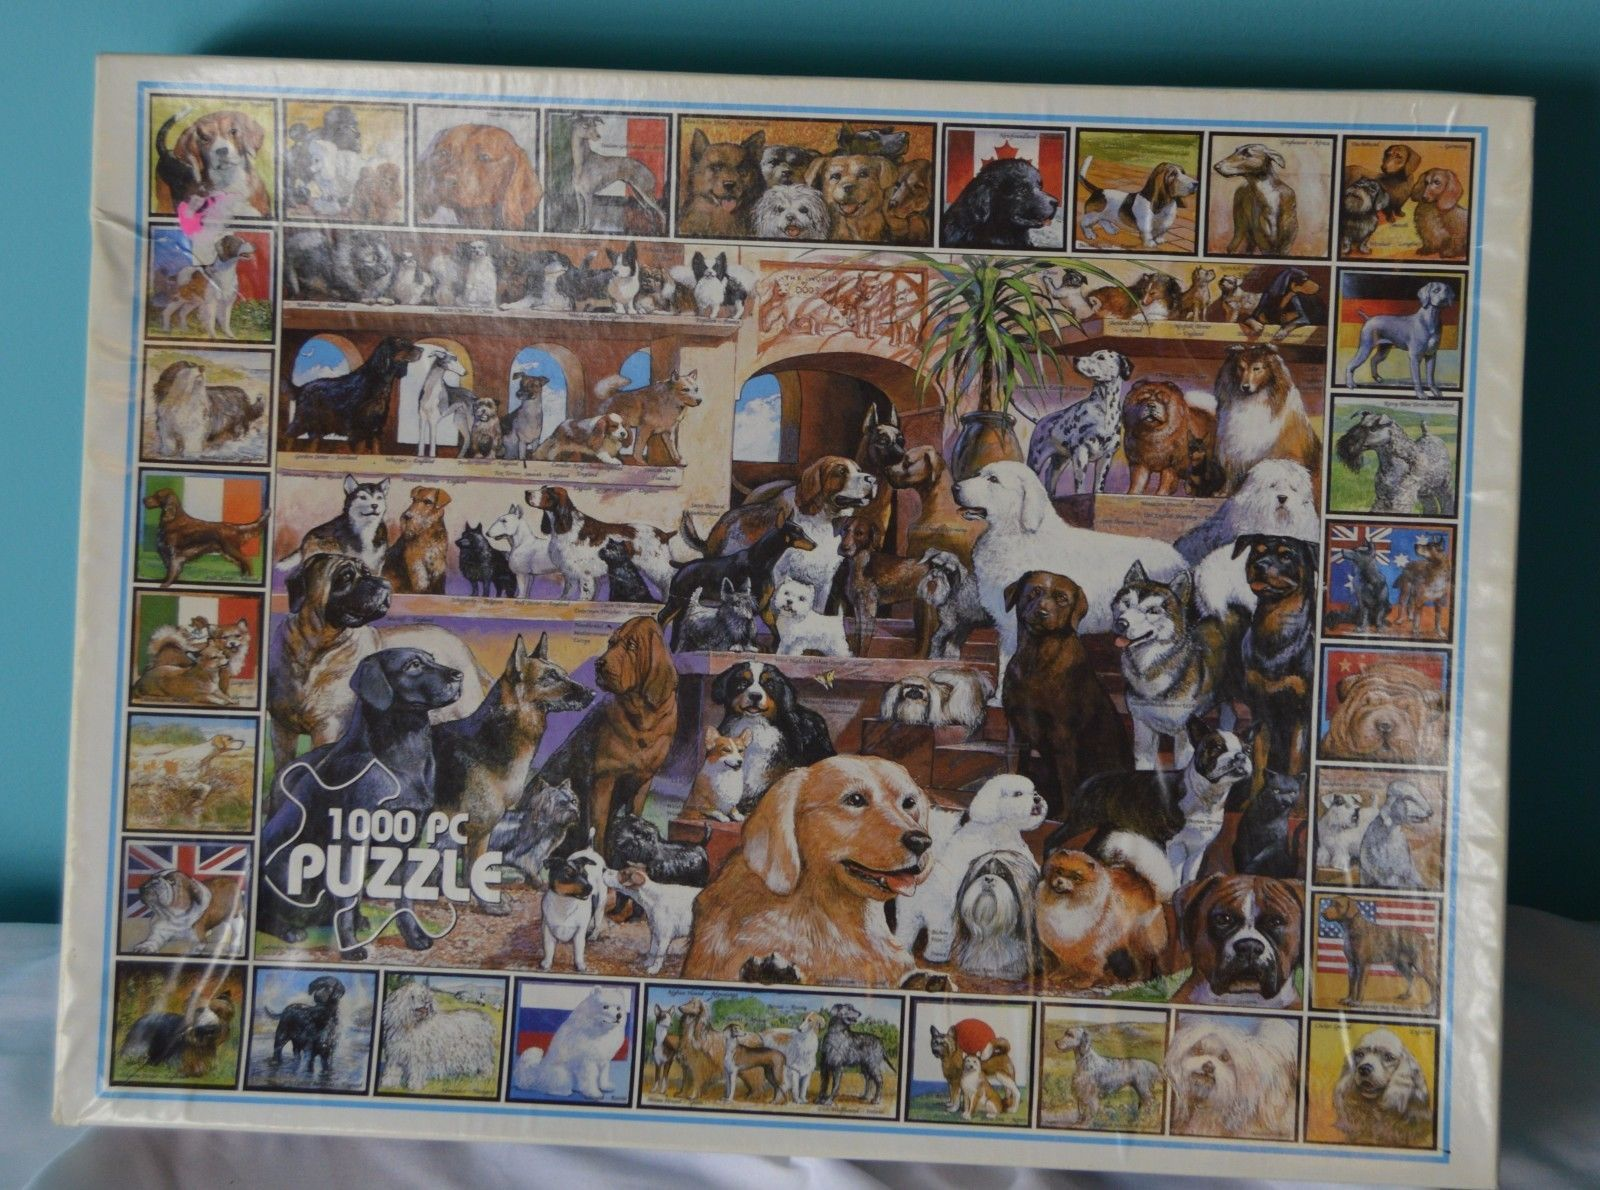 White Mountain Jigsaw Puzzle 1000 PC All and 14 similar items